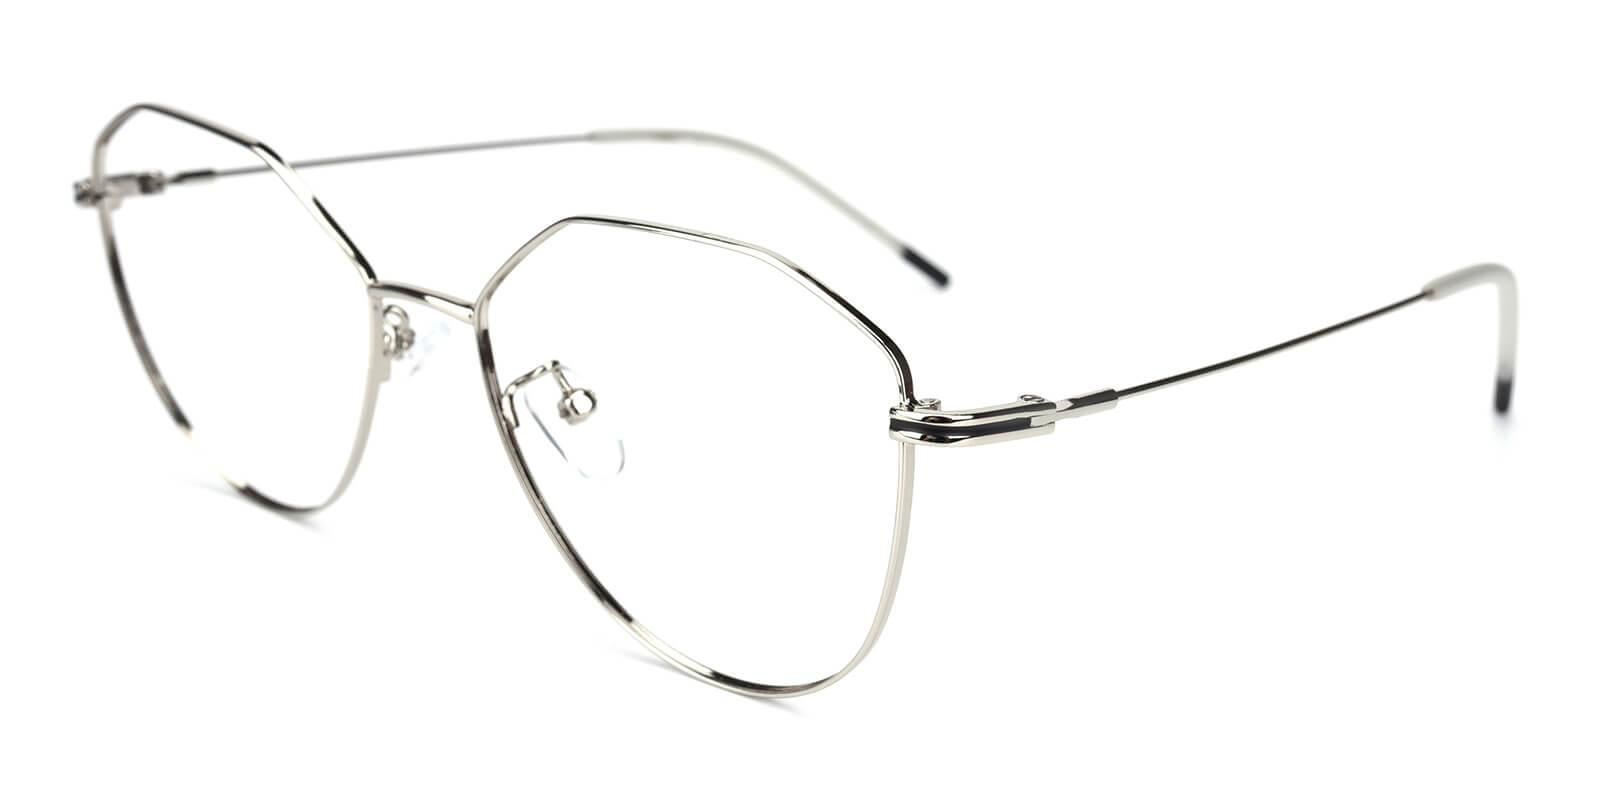 Surberly-Silver-Geometric-Metal-Eyeglasses-additional1